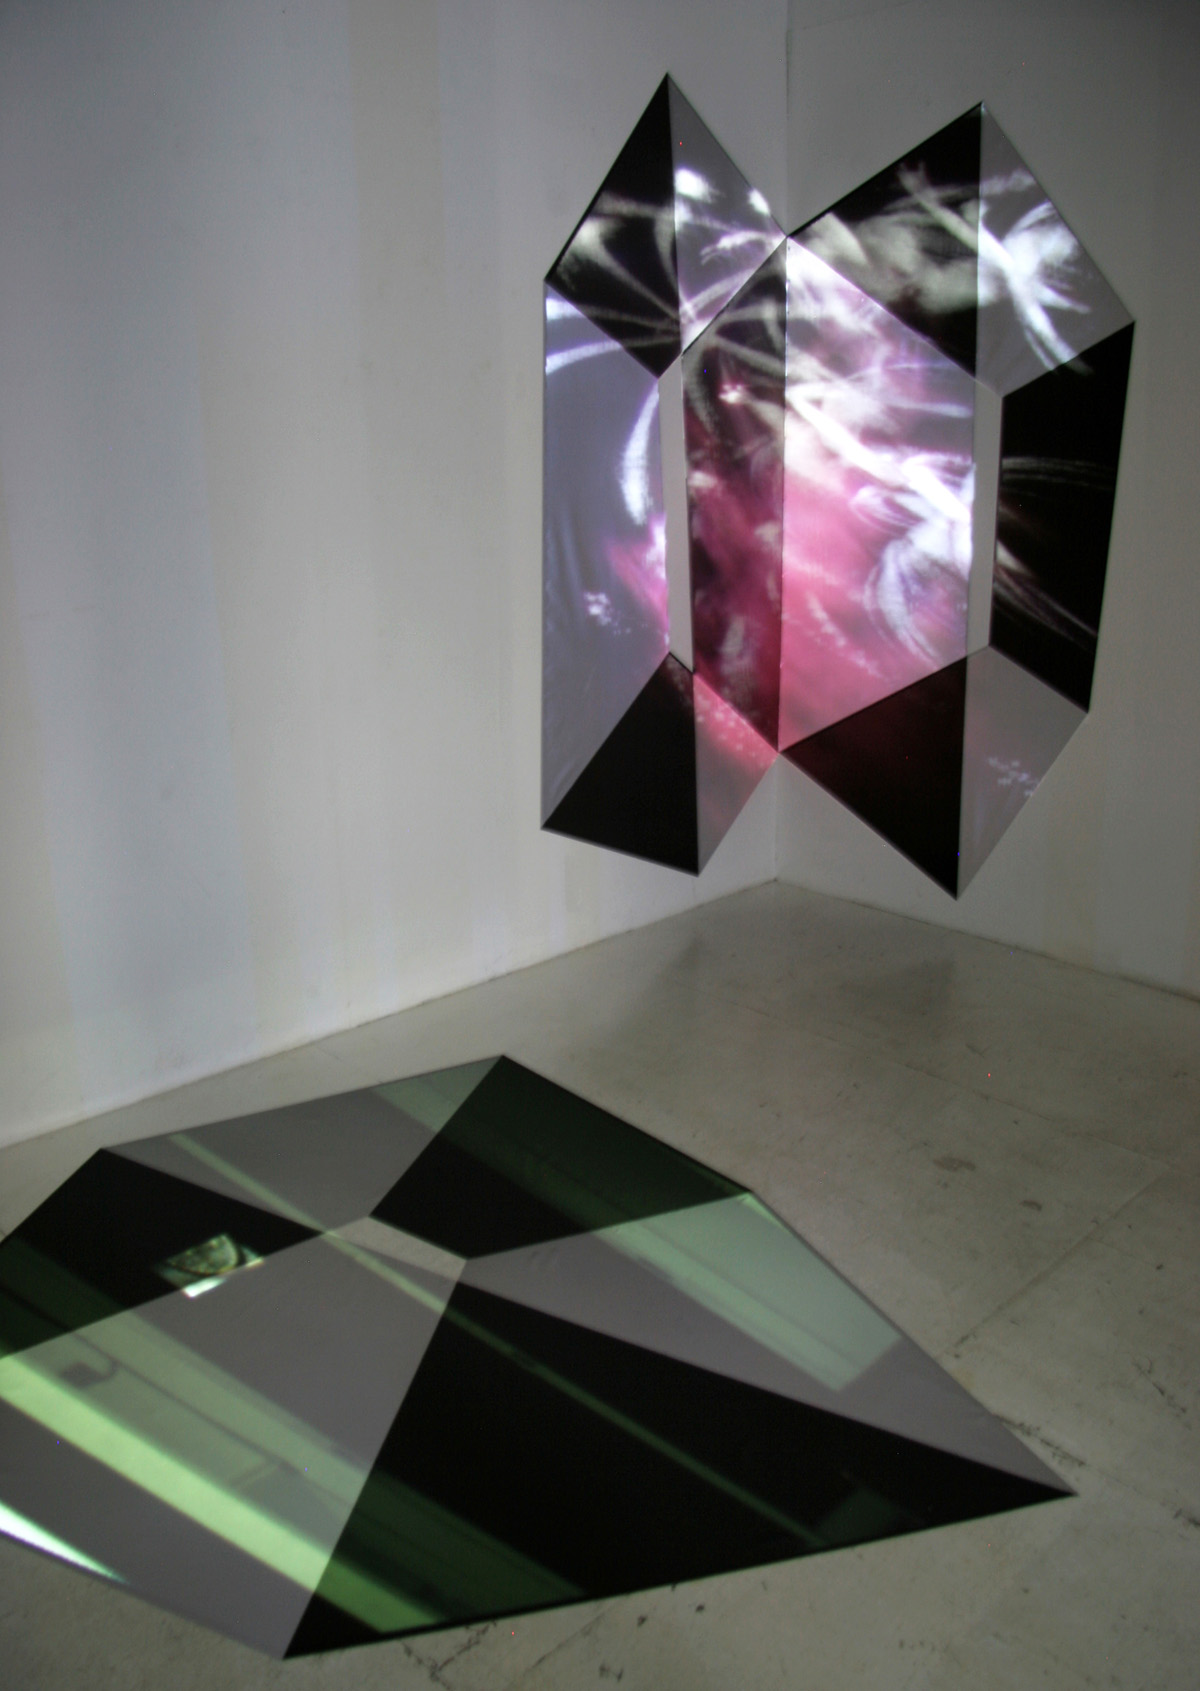 Fig.20 - 'Intangible Spaces' installation view Nathan Cohen Aisho Miura Arts Tokyo 2010: wall and floor installations with projections